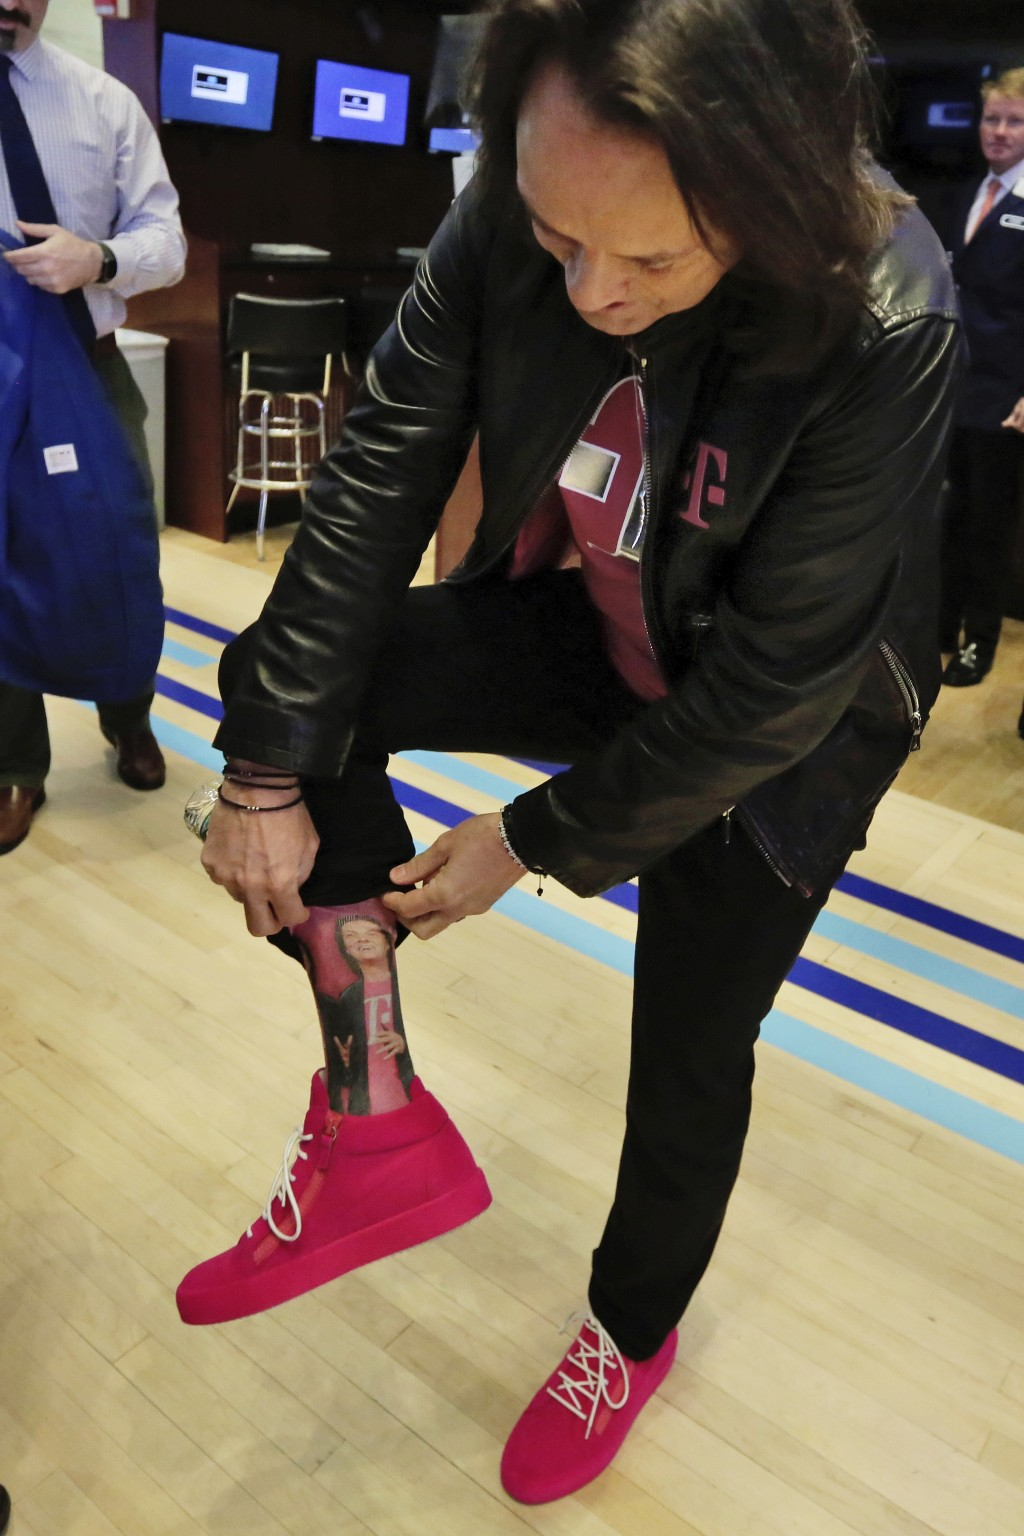 T-Mobile CEO John Legere shows off his personalized socks on the floor of the New York Stock Exchange, Monday, April 30, 2018. To gain approval for th...